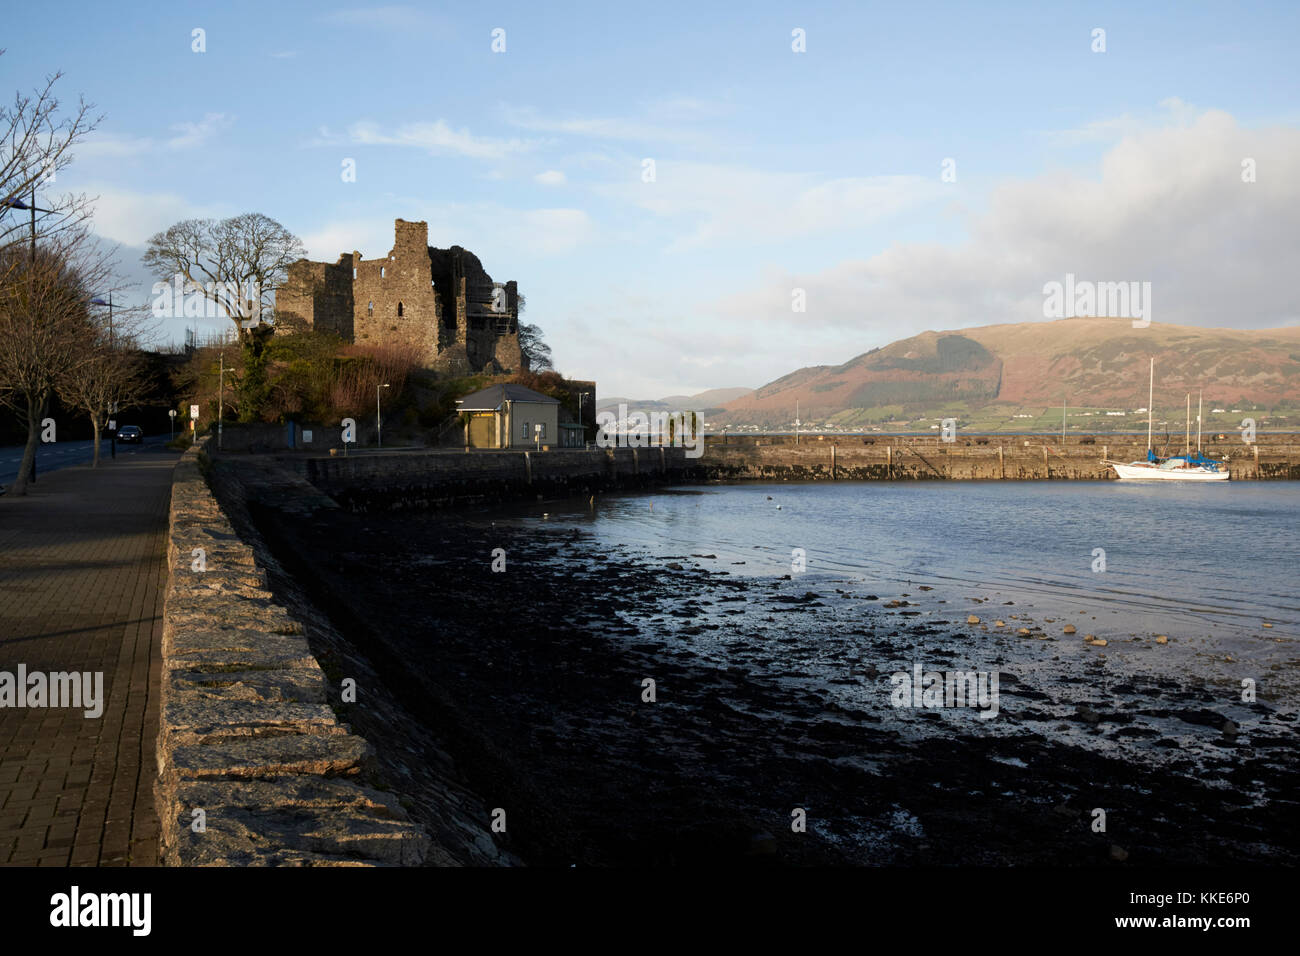 king johns castle on carlingford lough carlingford county louth republic of ireland - Stock Image